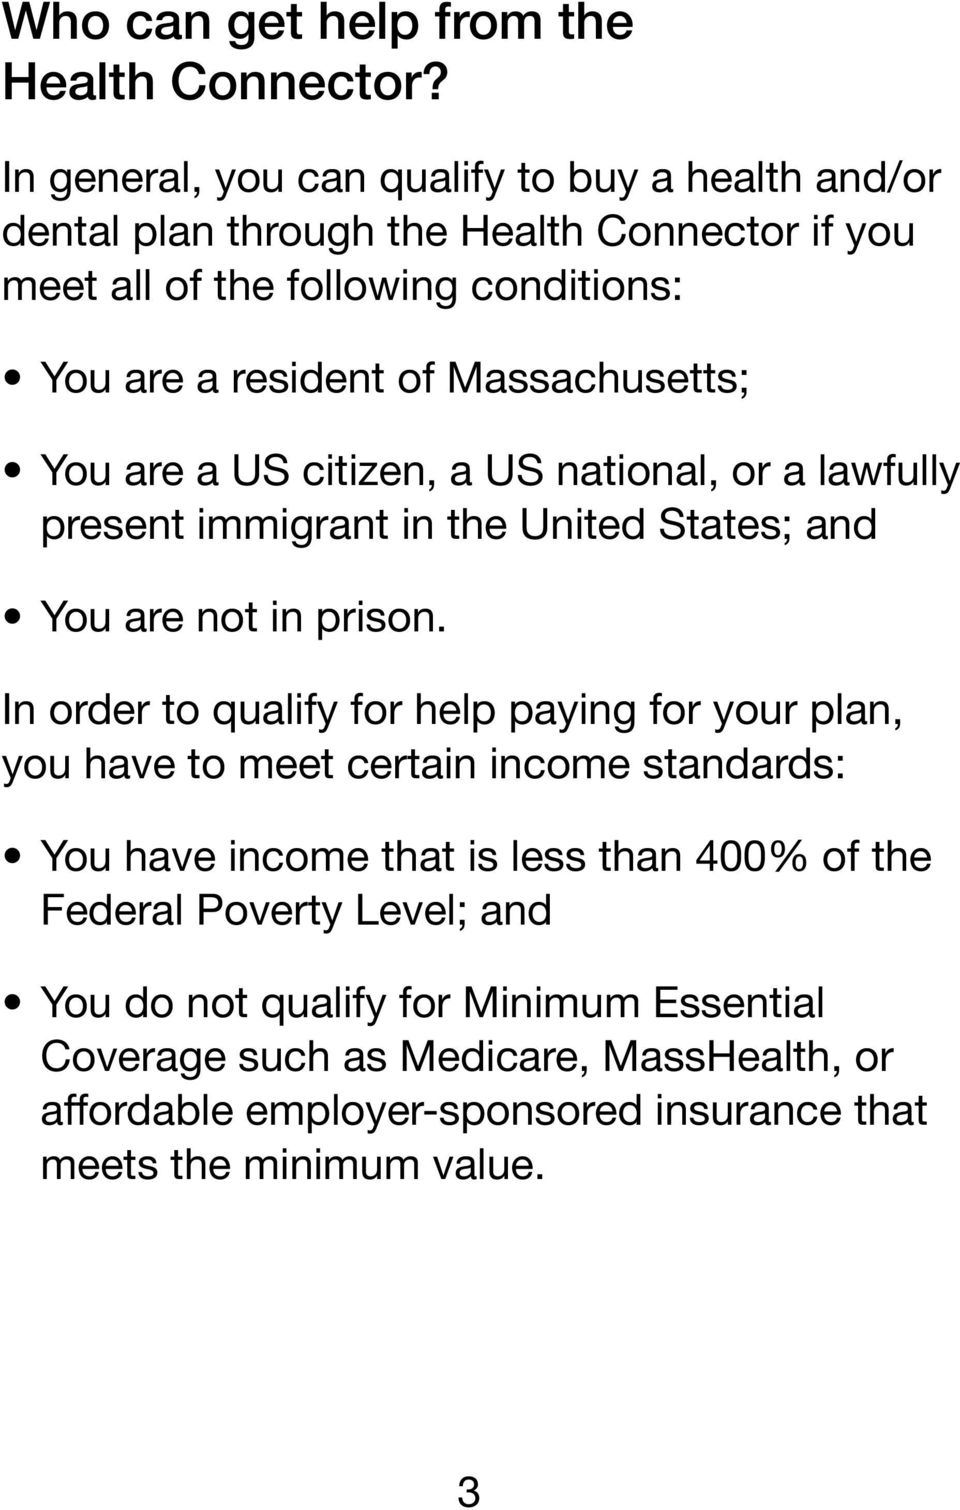 Massachusetts; You are a US citizen, a US national, or a lawfully present immigrant in the United States; and You are not in prison.